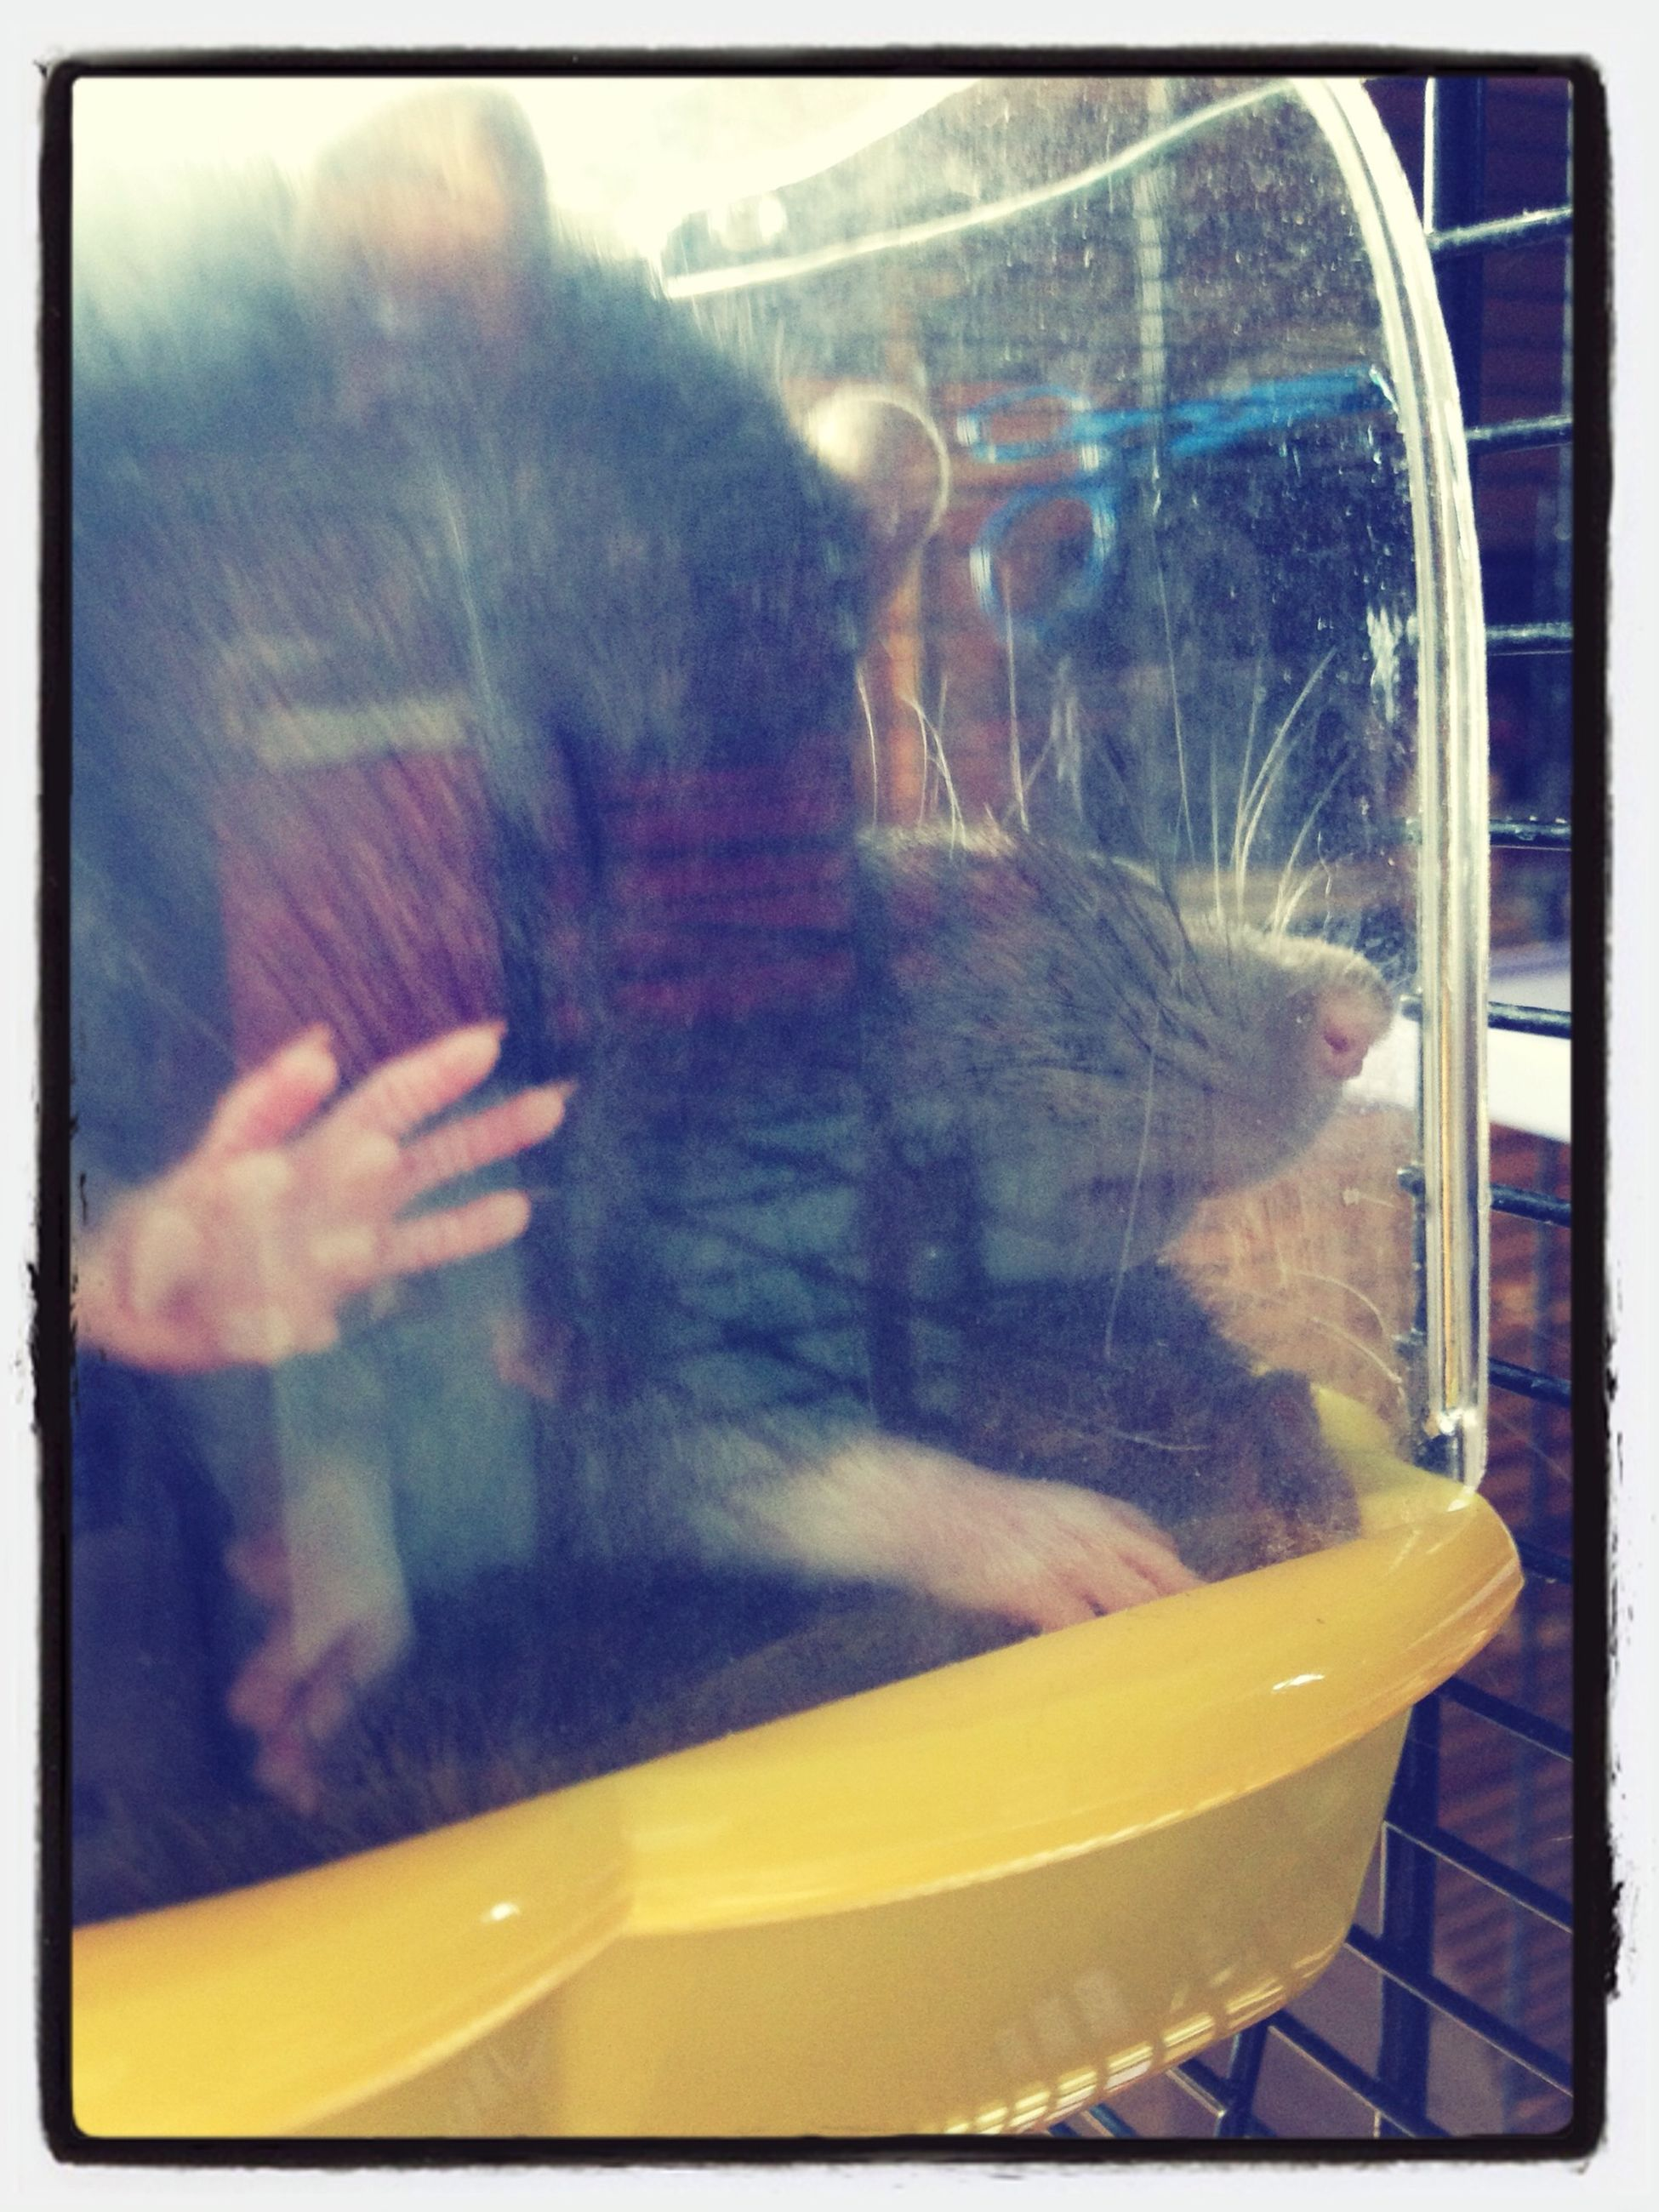 transfer print, glass - material, transportation, mode of transport, auto post production filter, transparent, yellow, car, reflection, window, travel, land vehicle, water, vehicle interior, close-up, indoors, motion, glass